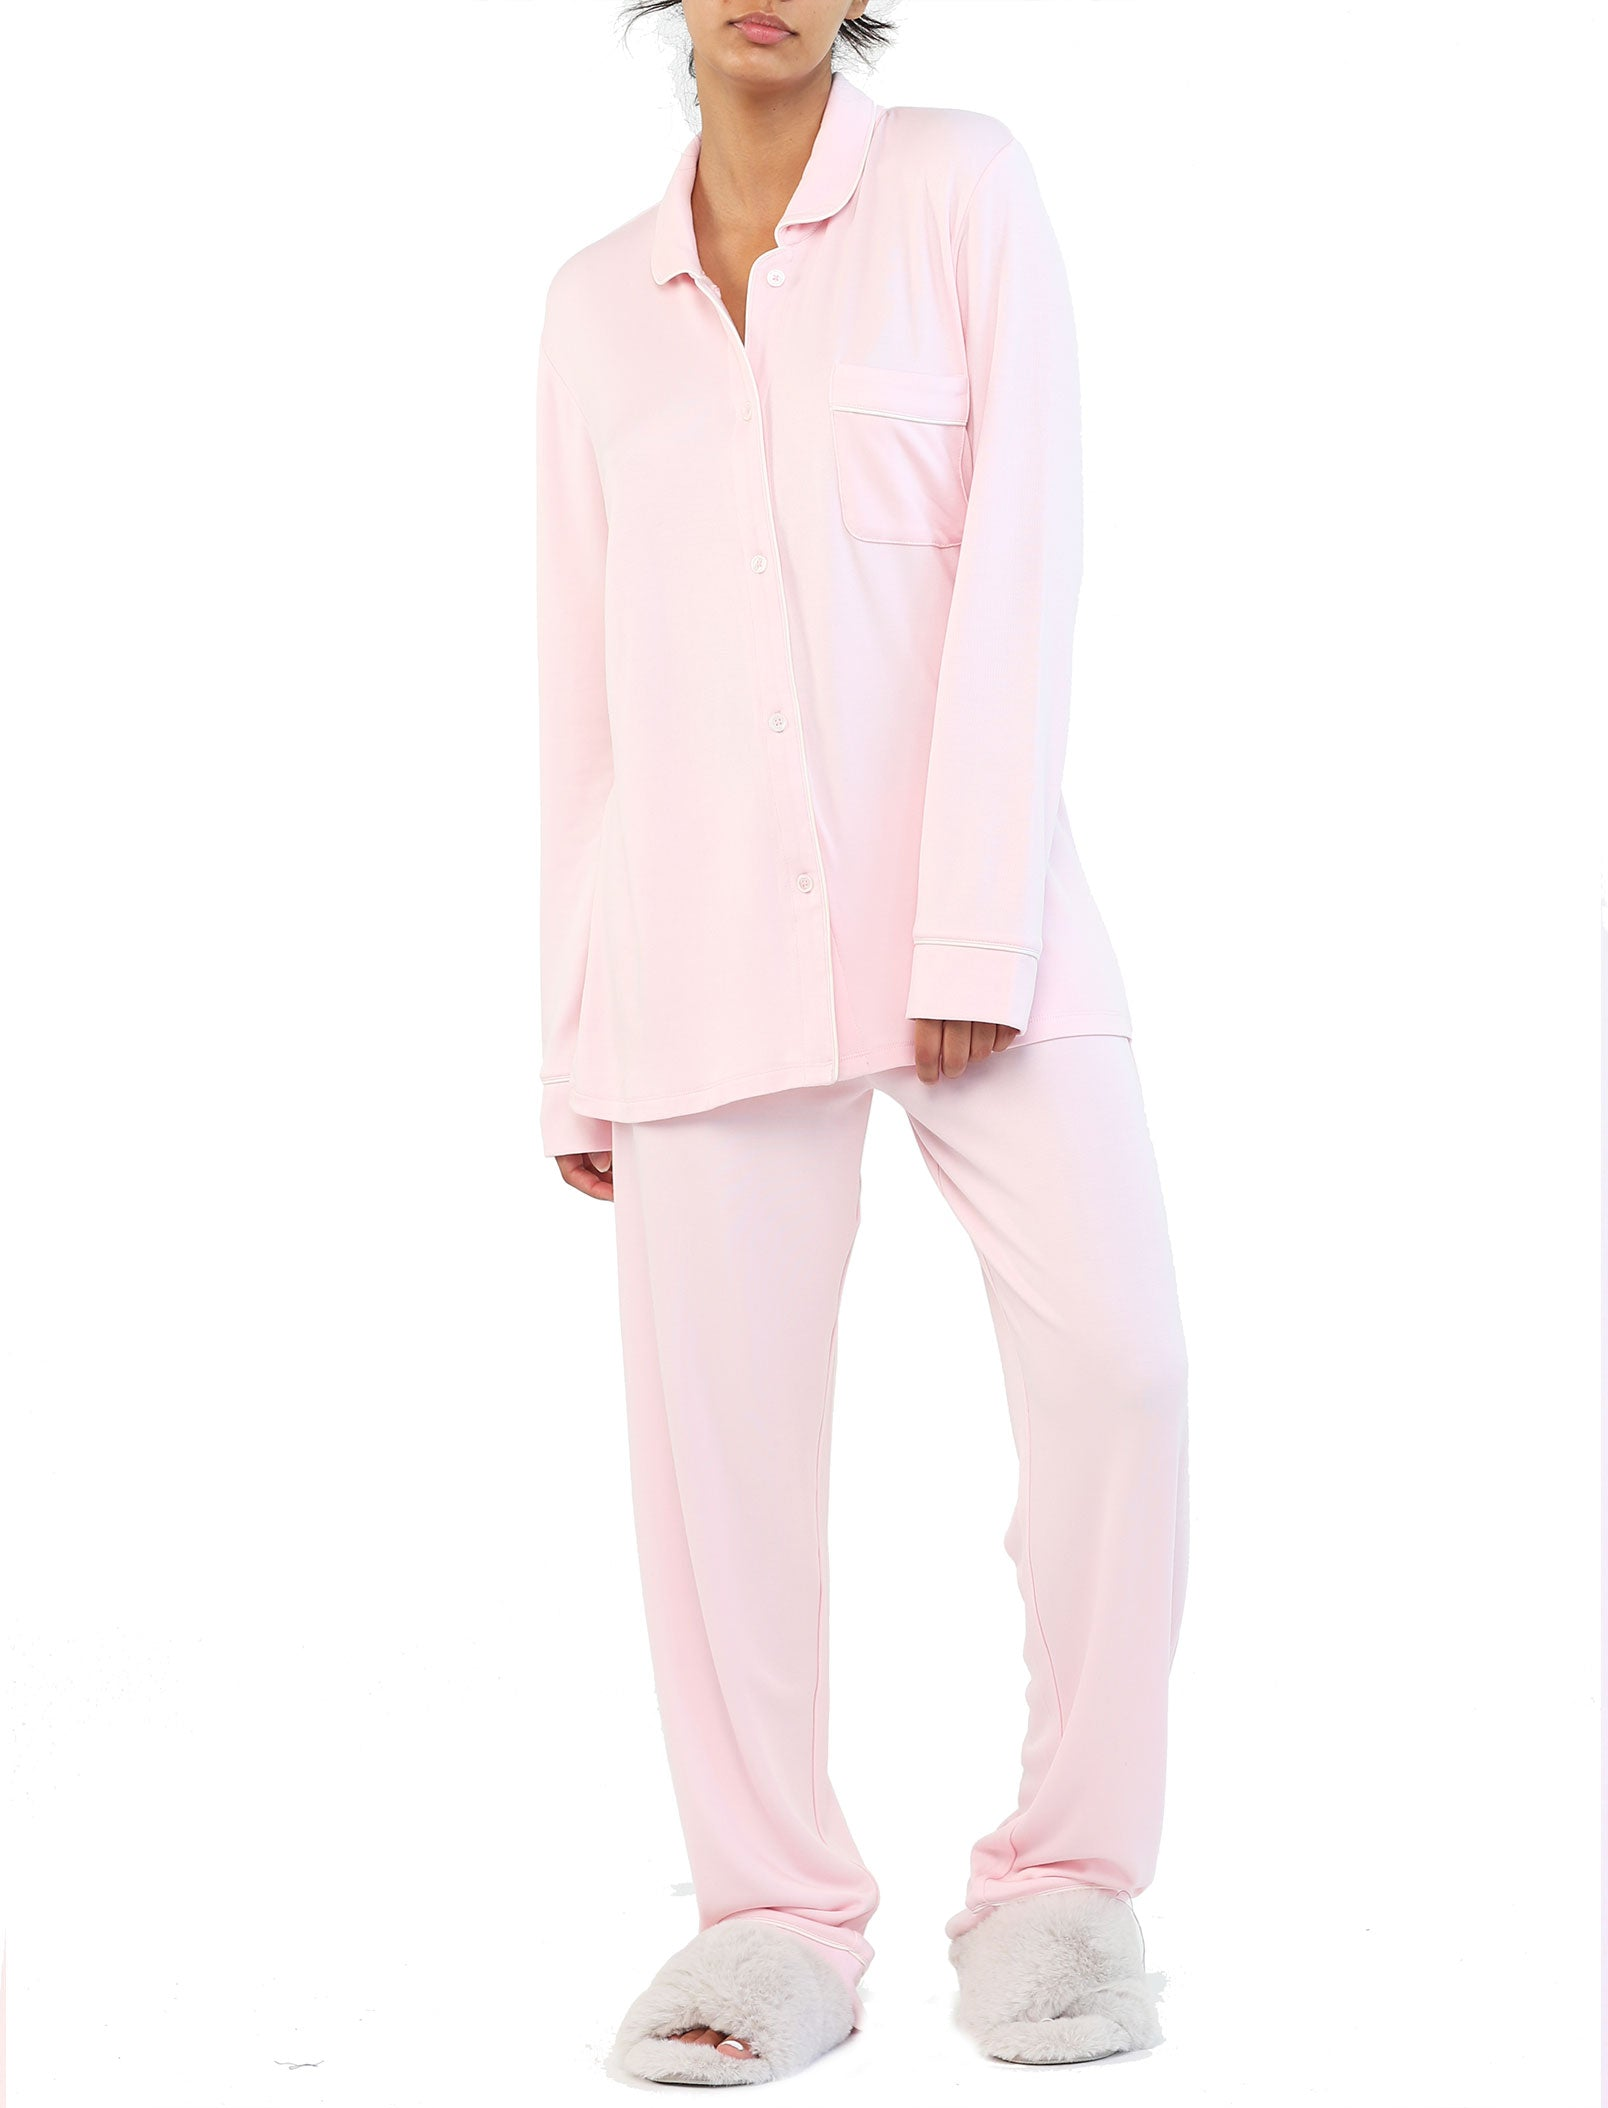 Cozy Kate Pajama Set in Rose